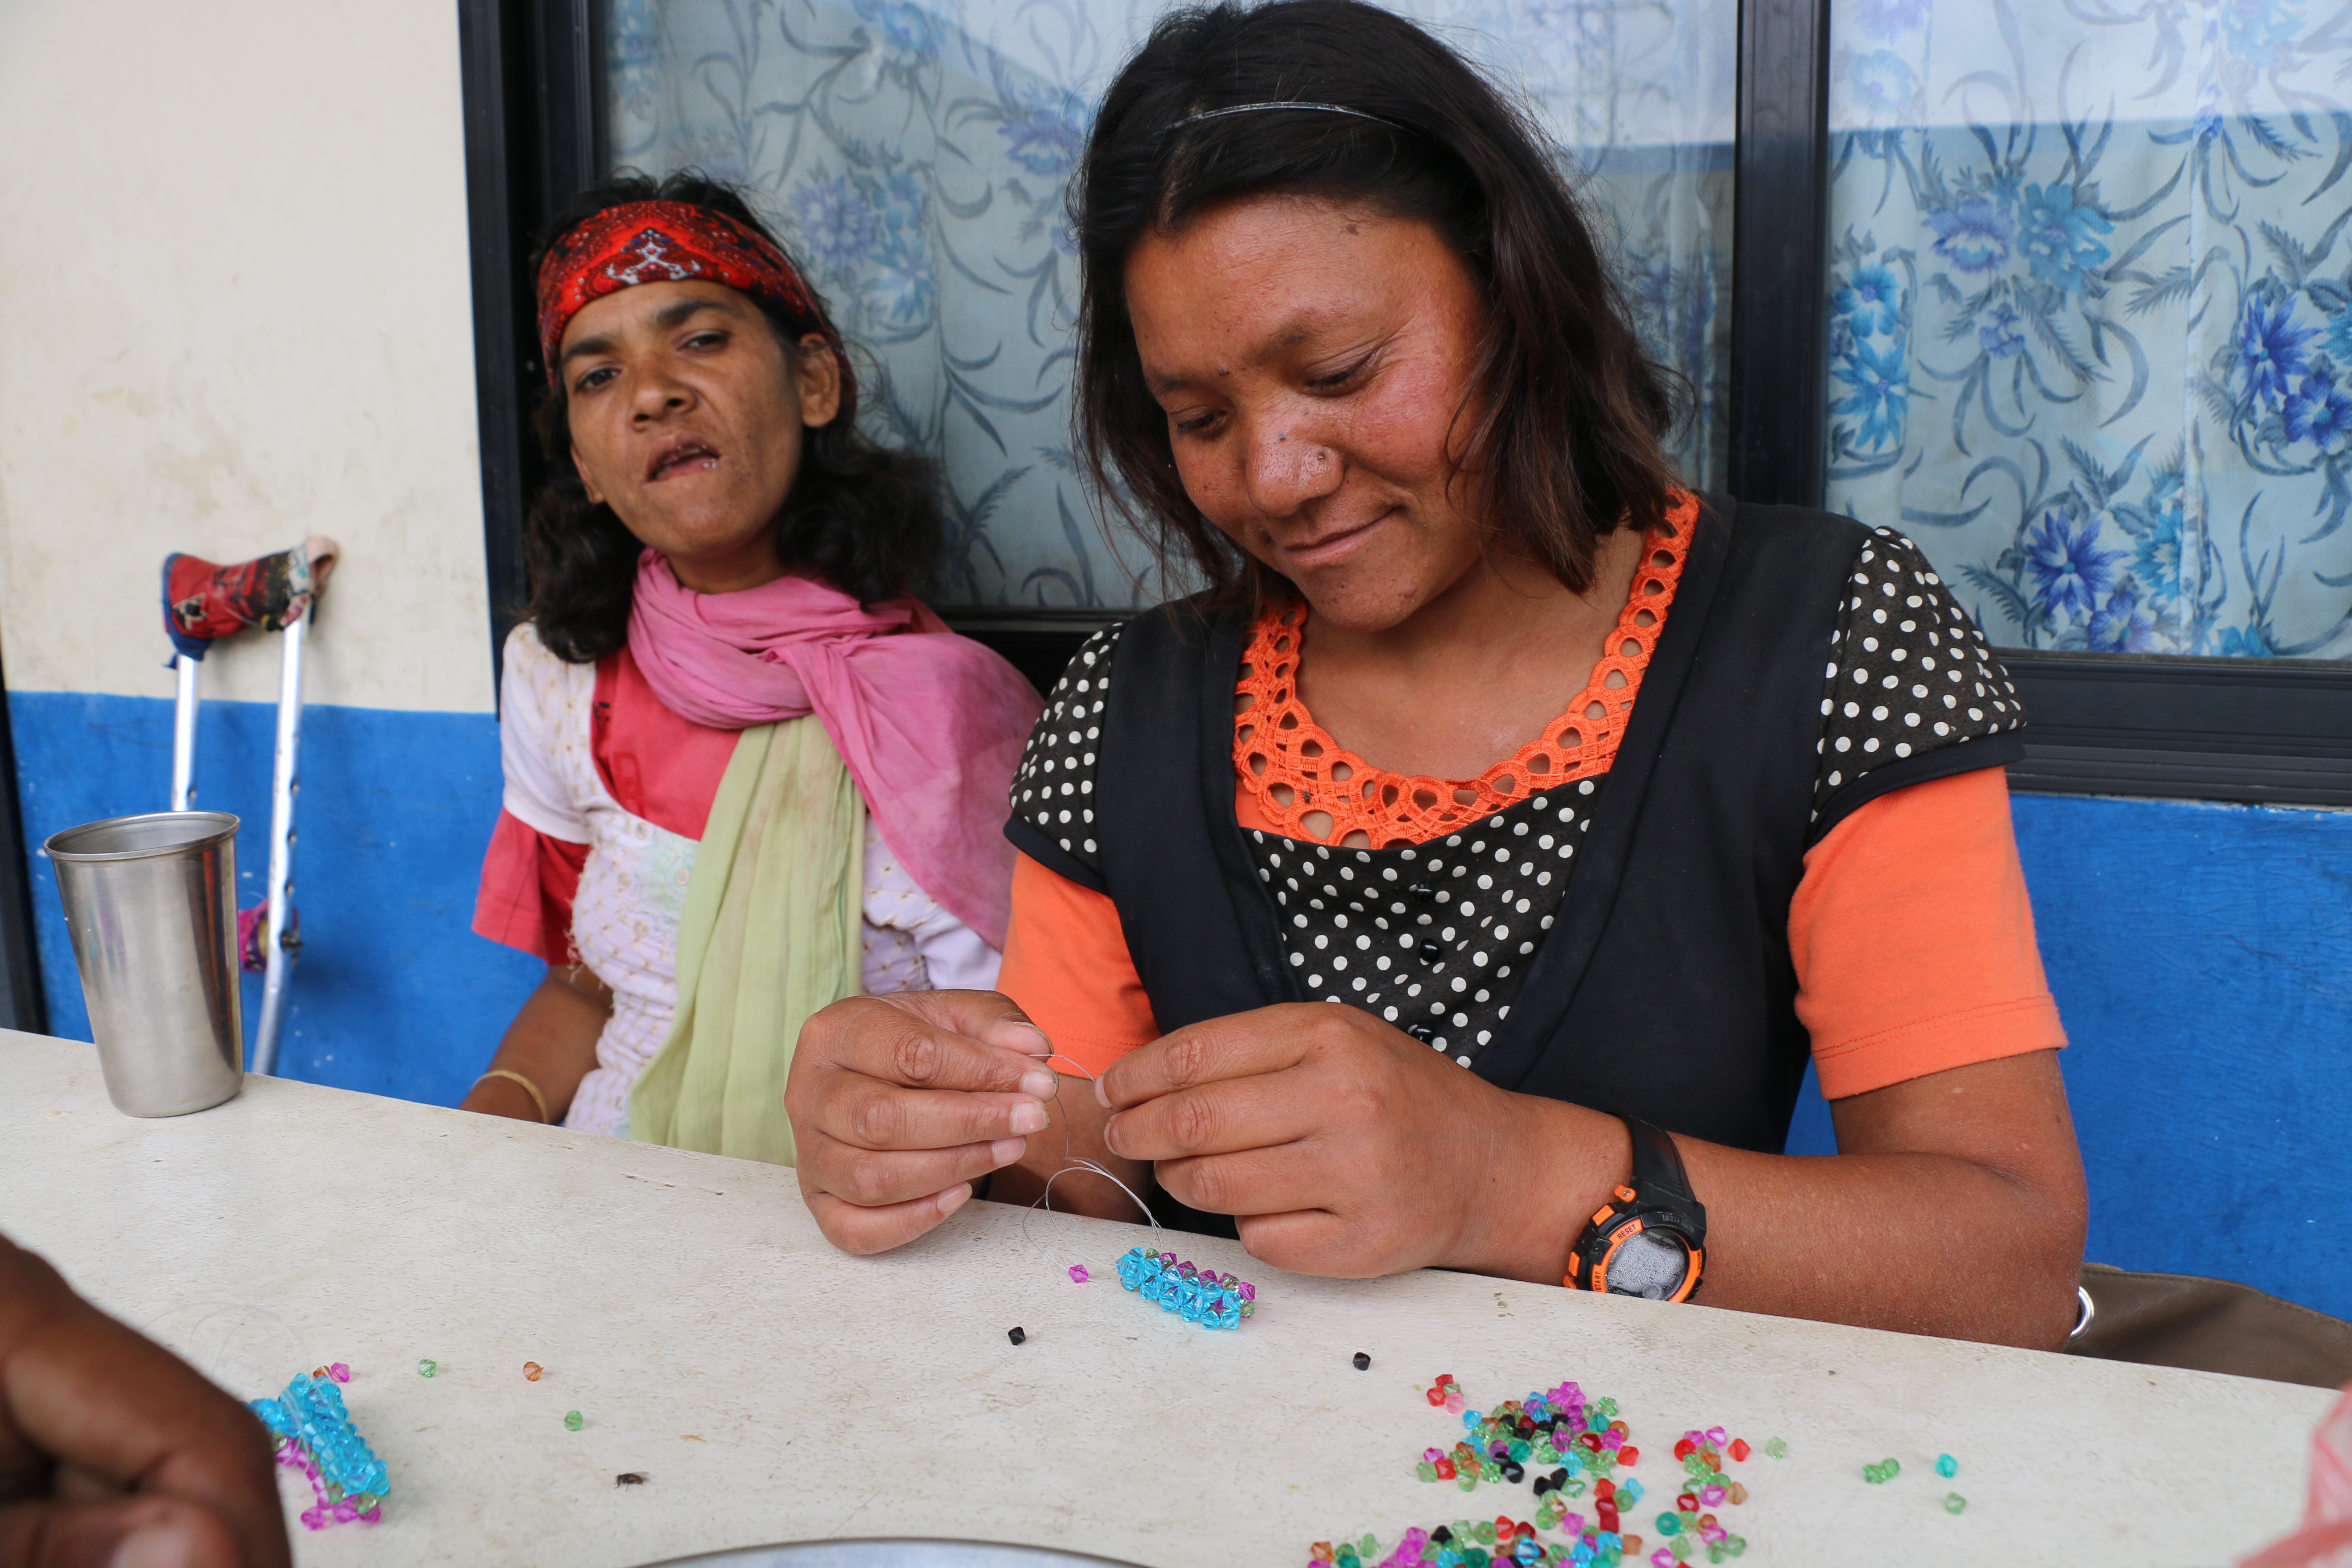 Making jewellery from beads